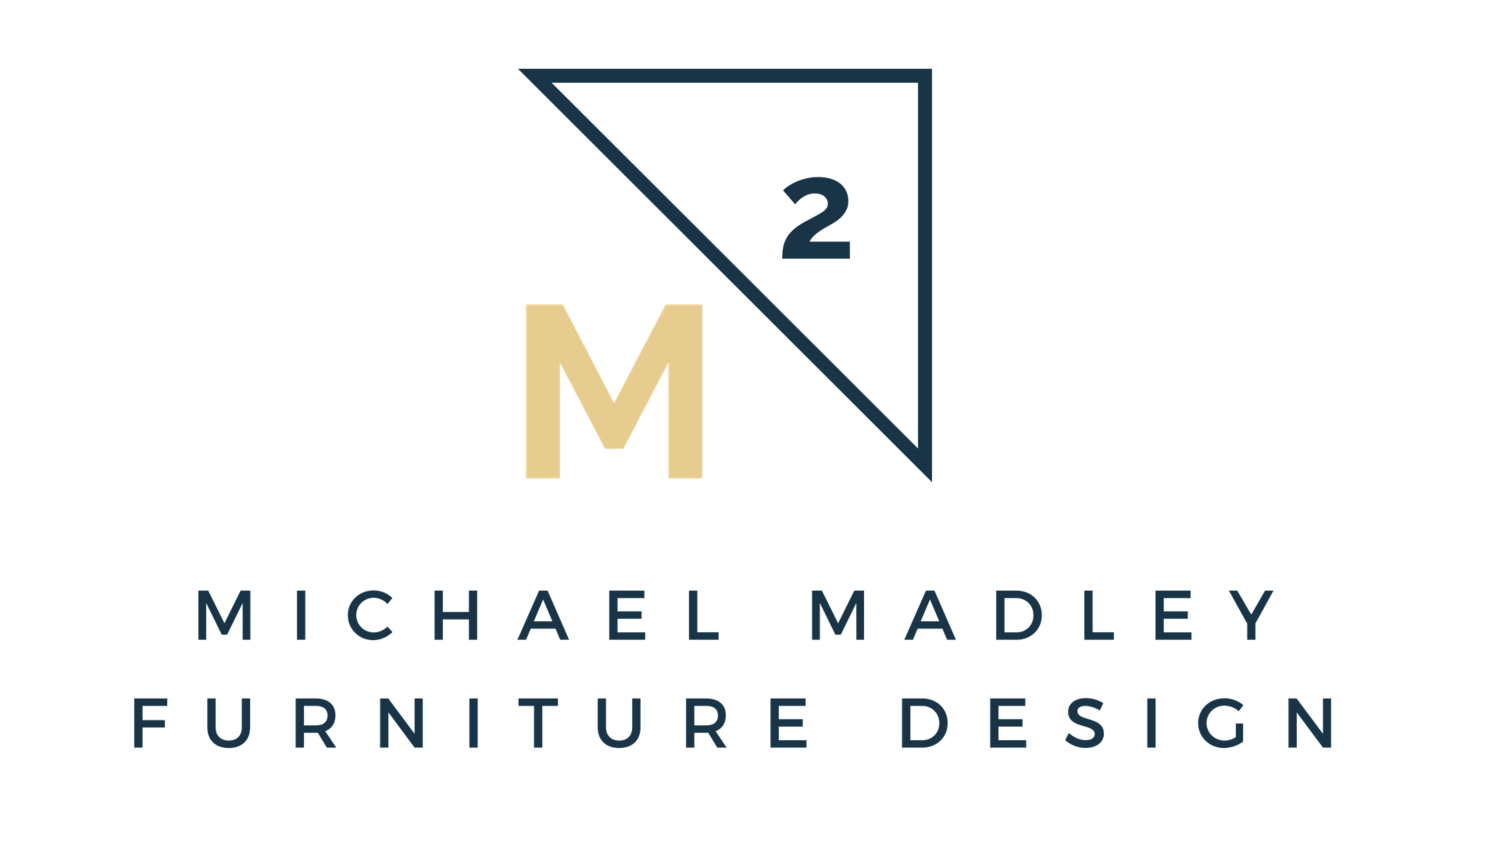 Michael Madley Design